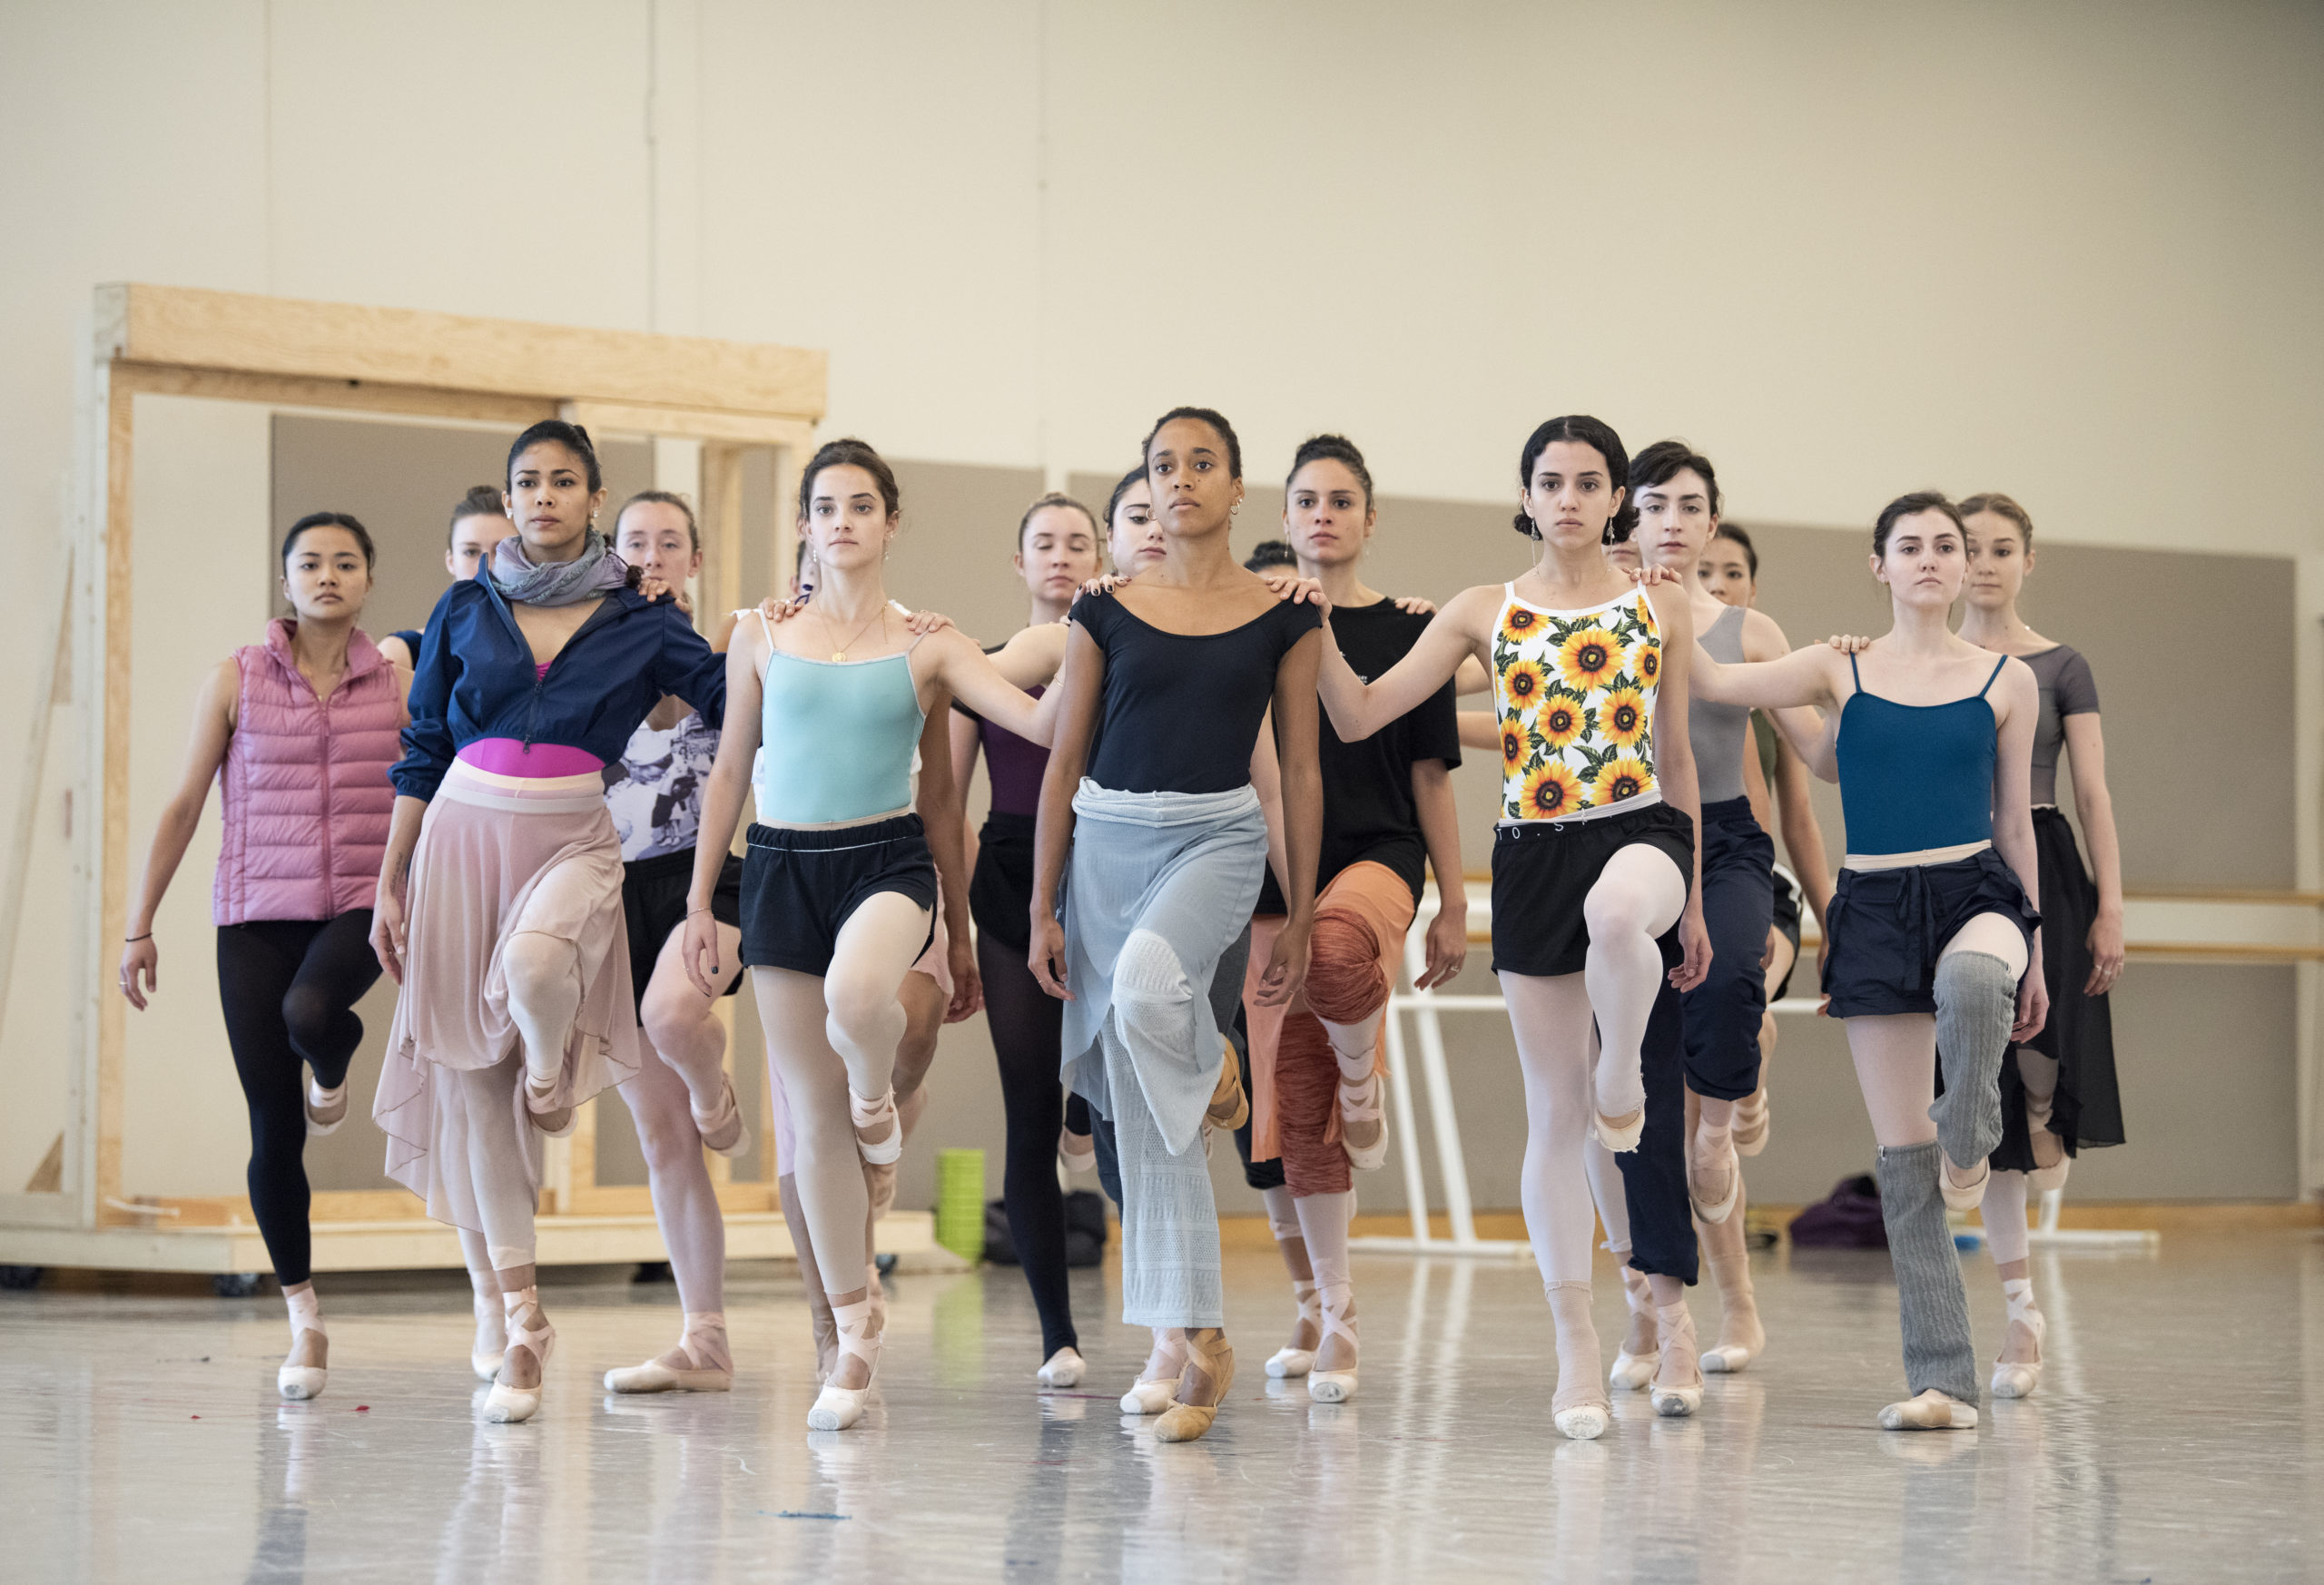 CATHY MARSTON CREATES MRS. ROBINSON FOR SAN FRANCISCO BALLET, PREMIERING ON PROGRAM 05, MARCH 24, 2020